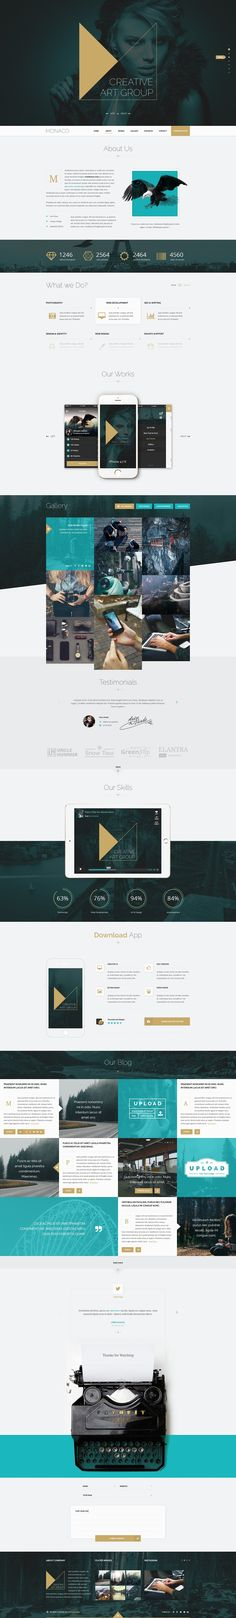 20+ The Most Creative WordPress Themes of 2015